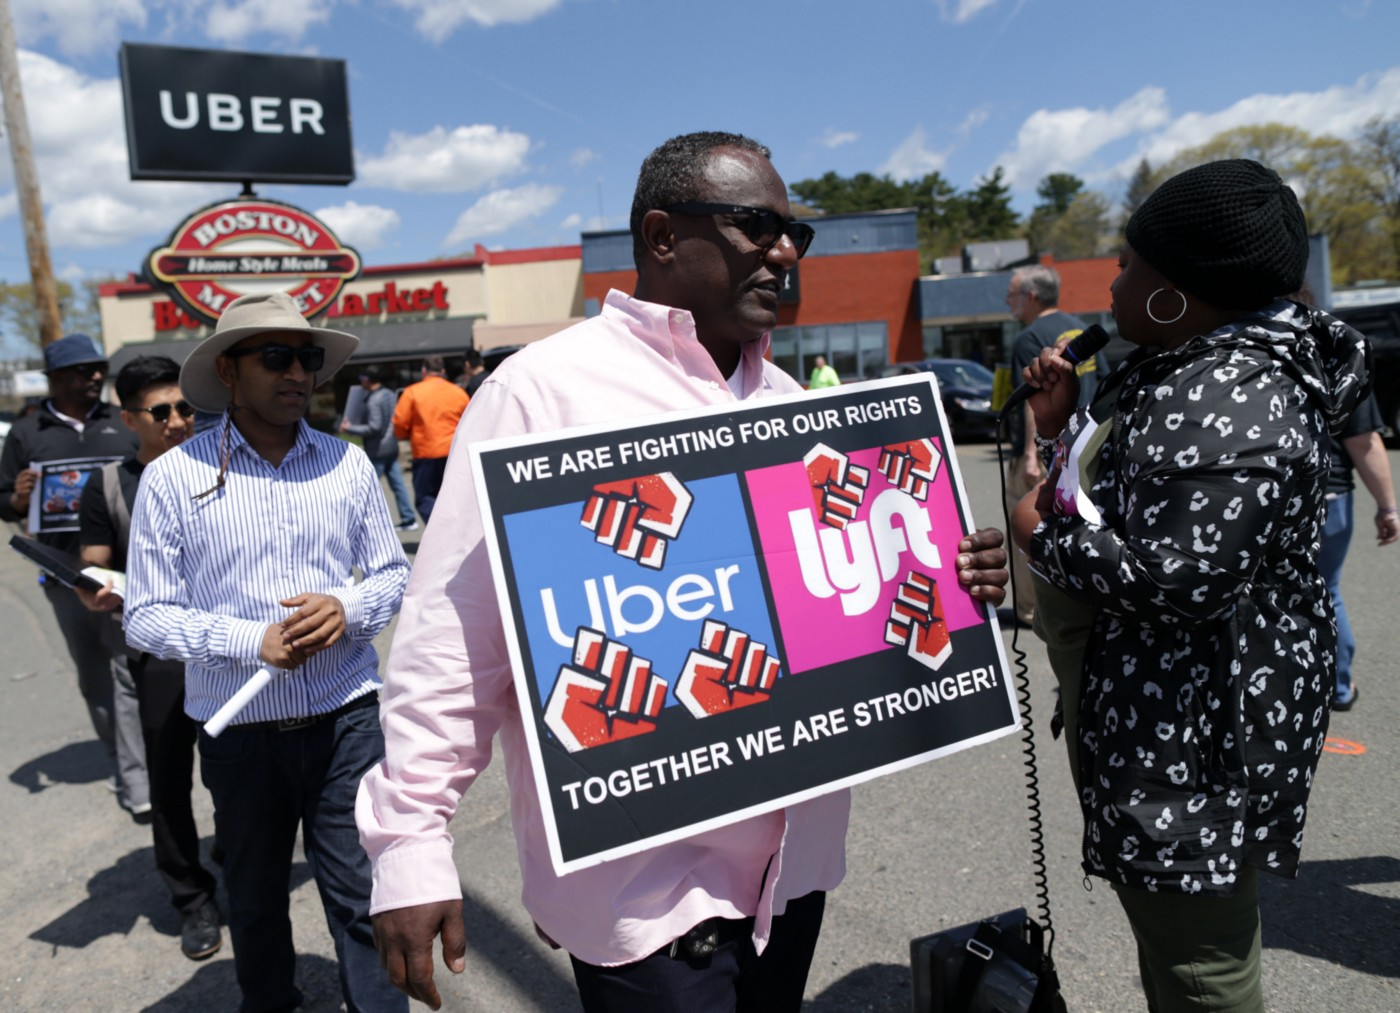 Uber and Lyft drivers protest outside the Uber offices in Saugus, MA.